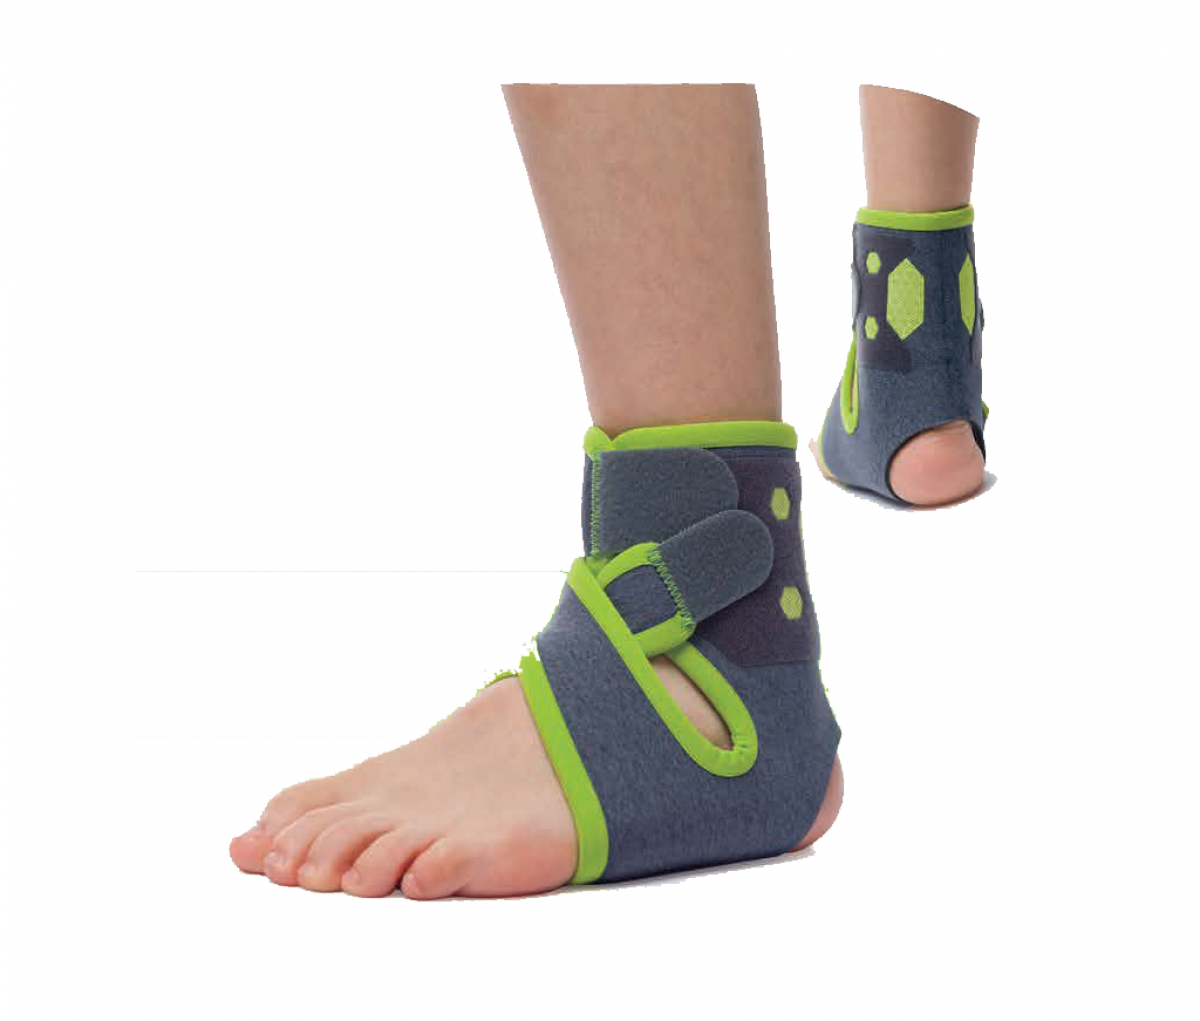 ANKLE SUPPORT - T2 MPK800